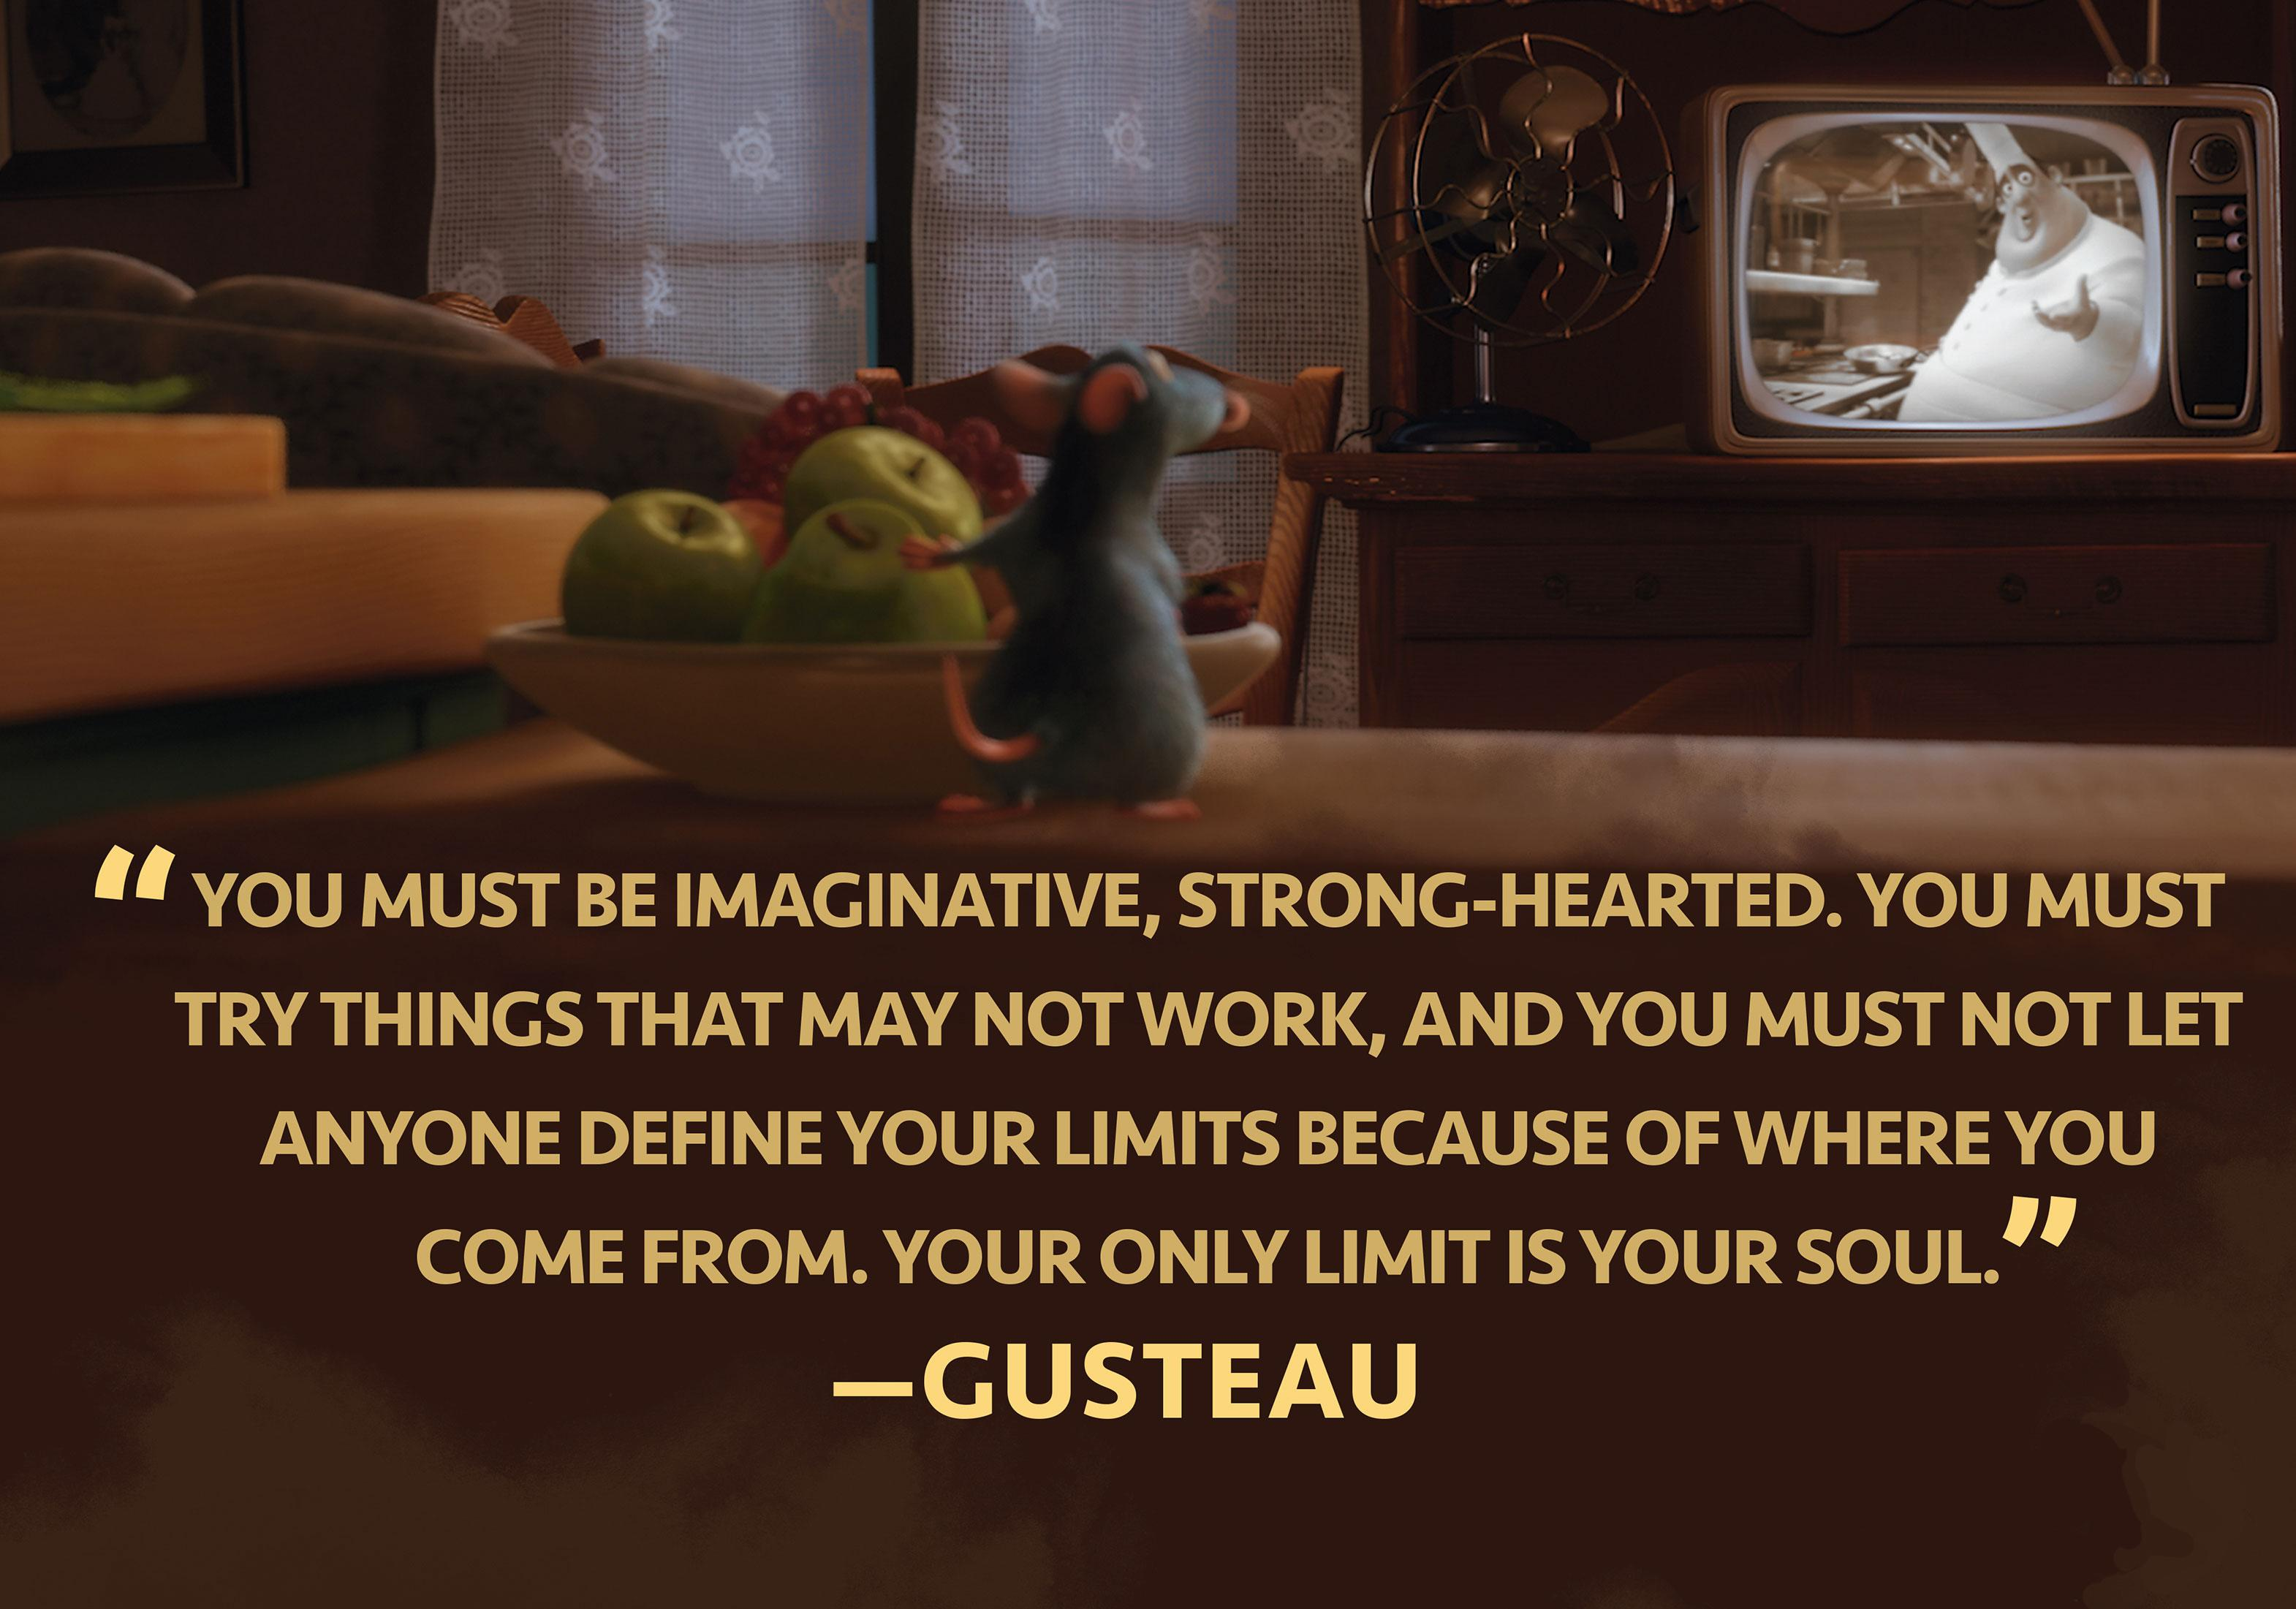 [Image]Great movie and a great quote indeed.